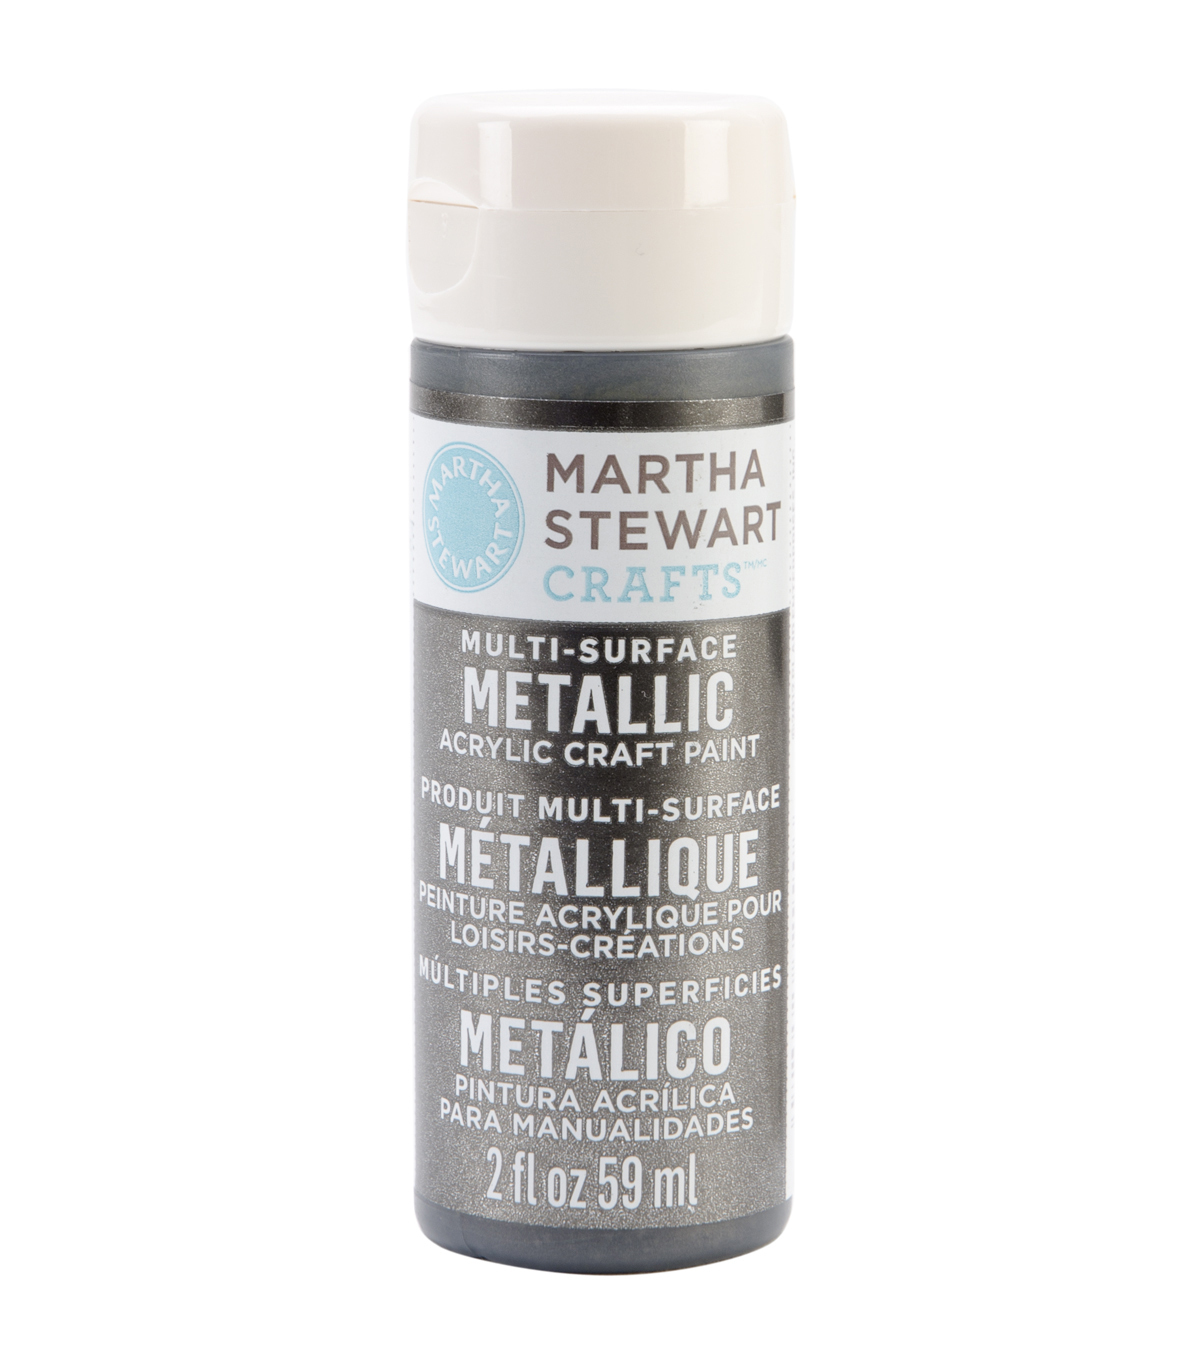 Martha Stewart Metallic Acrylic Craft Pa